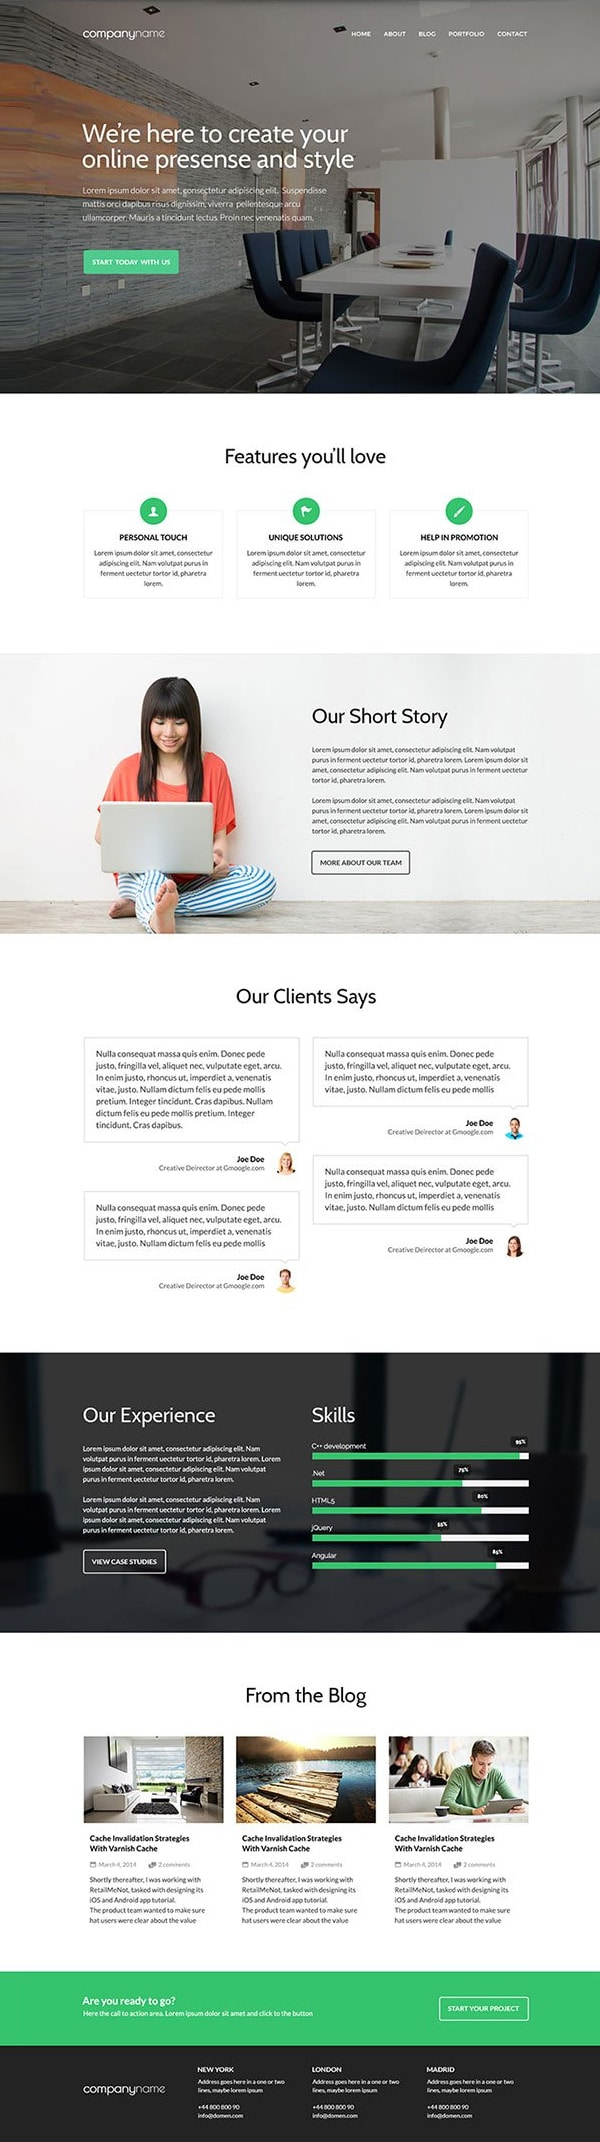 Fre Business Website Template PSD